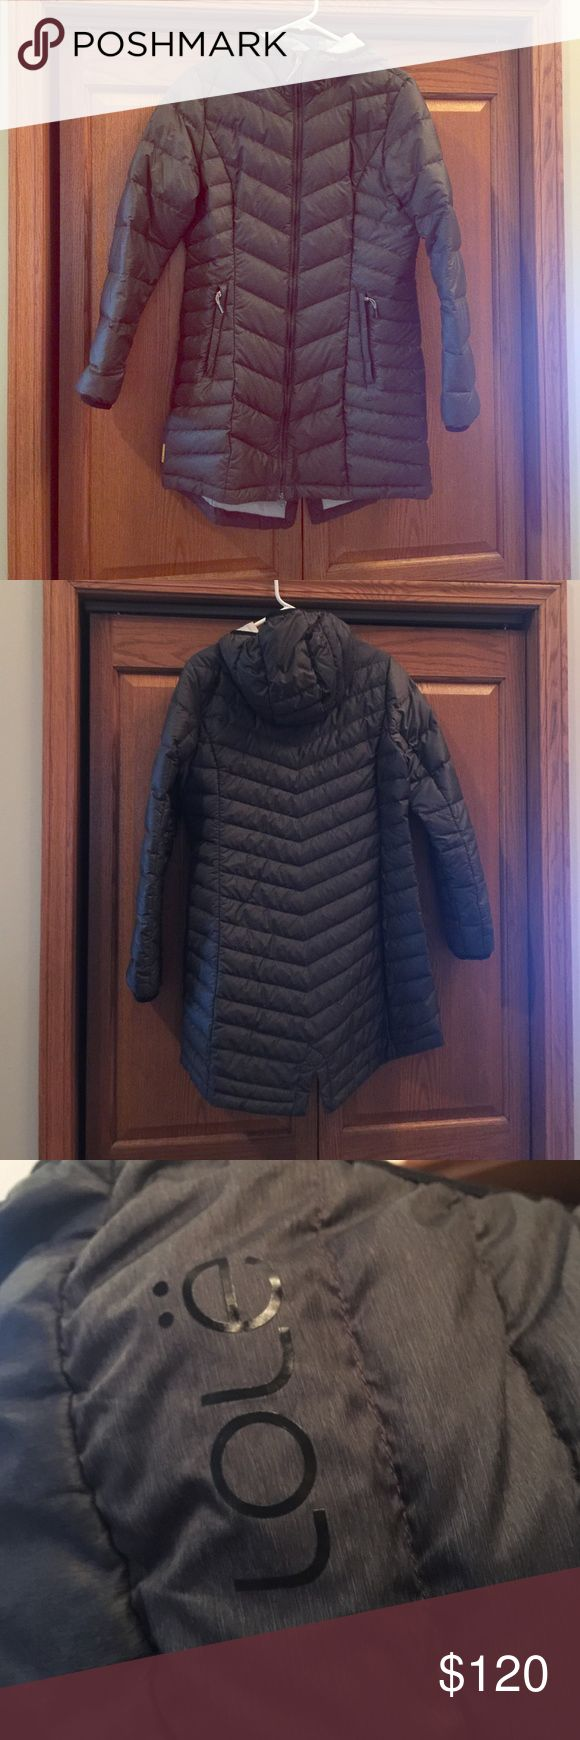 Lole Jacket Bought a few months ago! Decided I have to many jackets! Great condition. No noticeable wear Lole Jackets & Coats Puffers